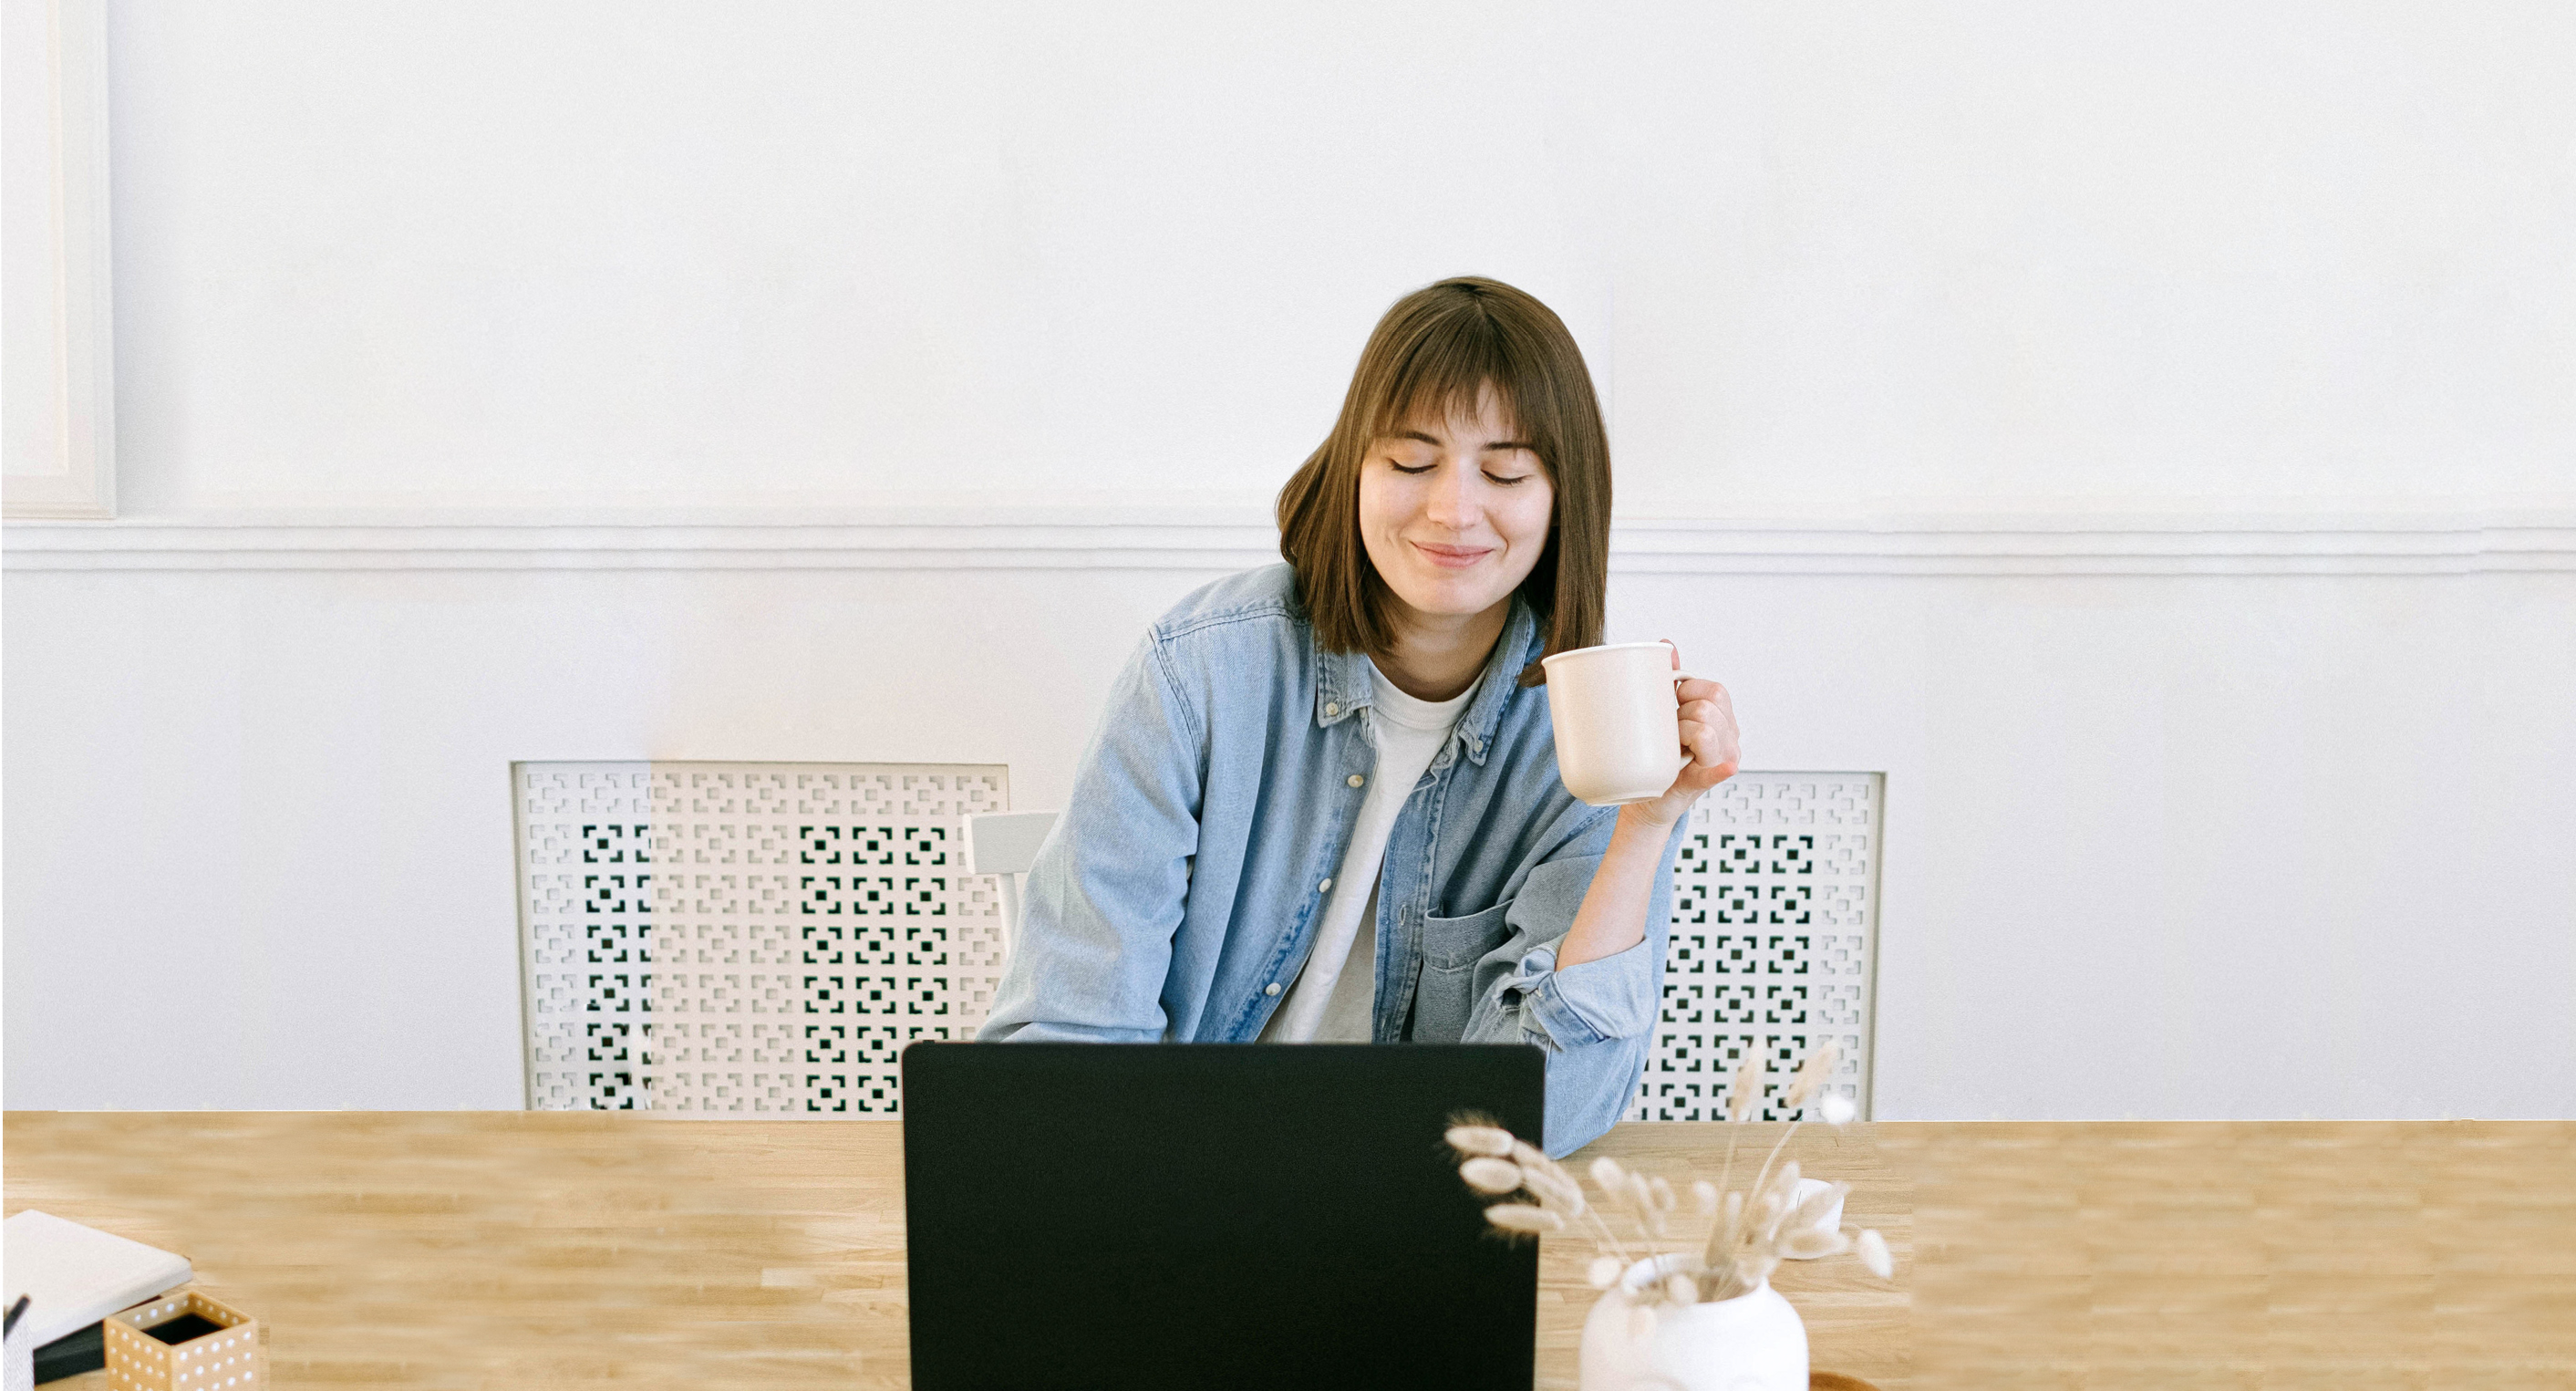 Female drinking coffee working on her laptop